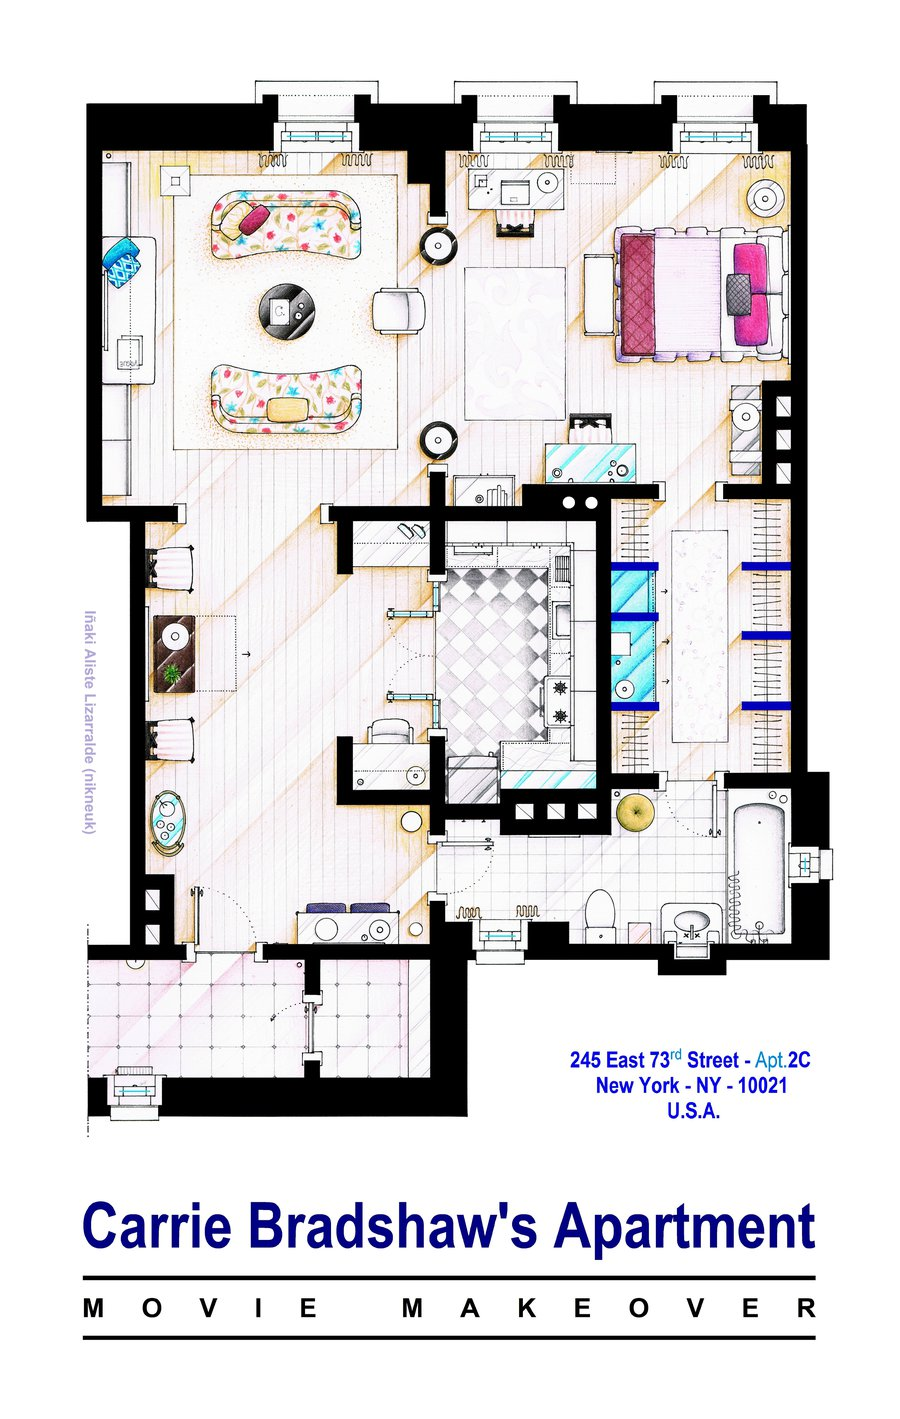 19 Famous Floorplans From Your Favorite Movie And Tv Show